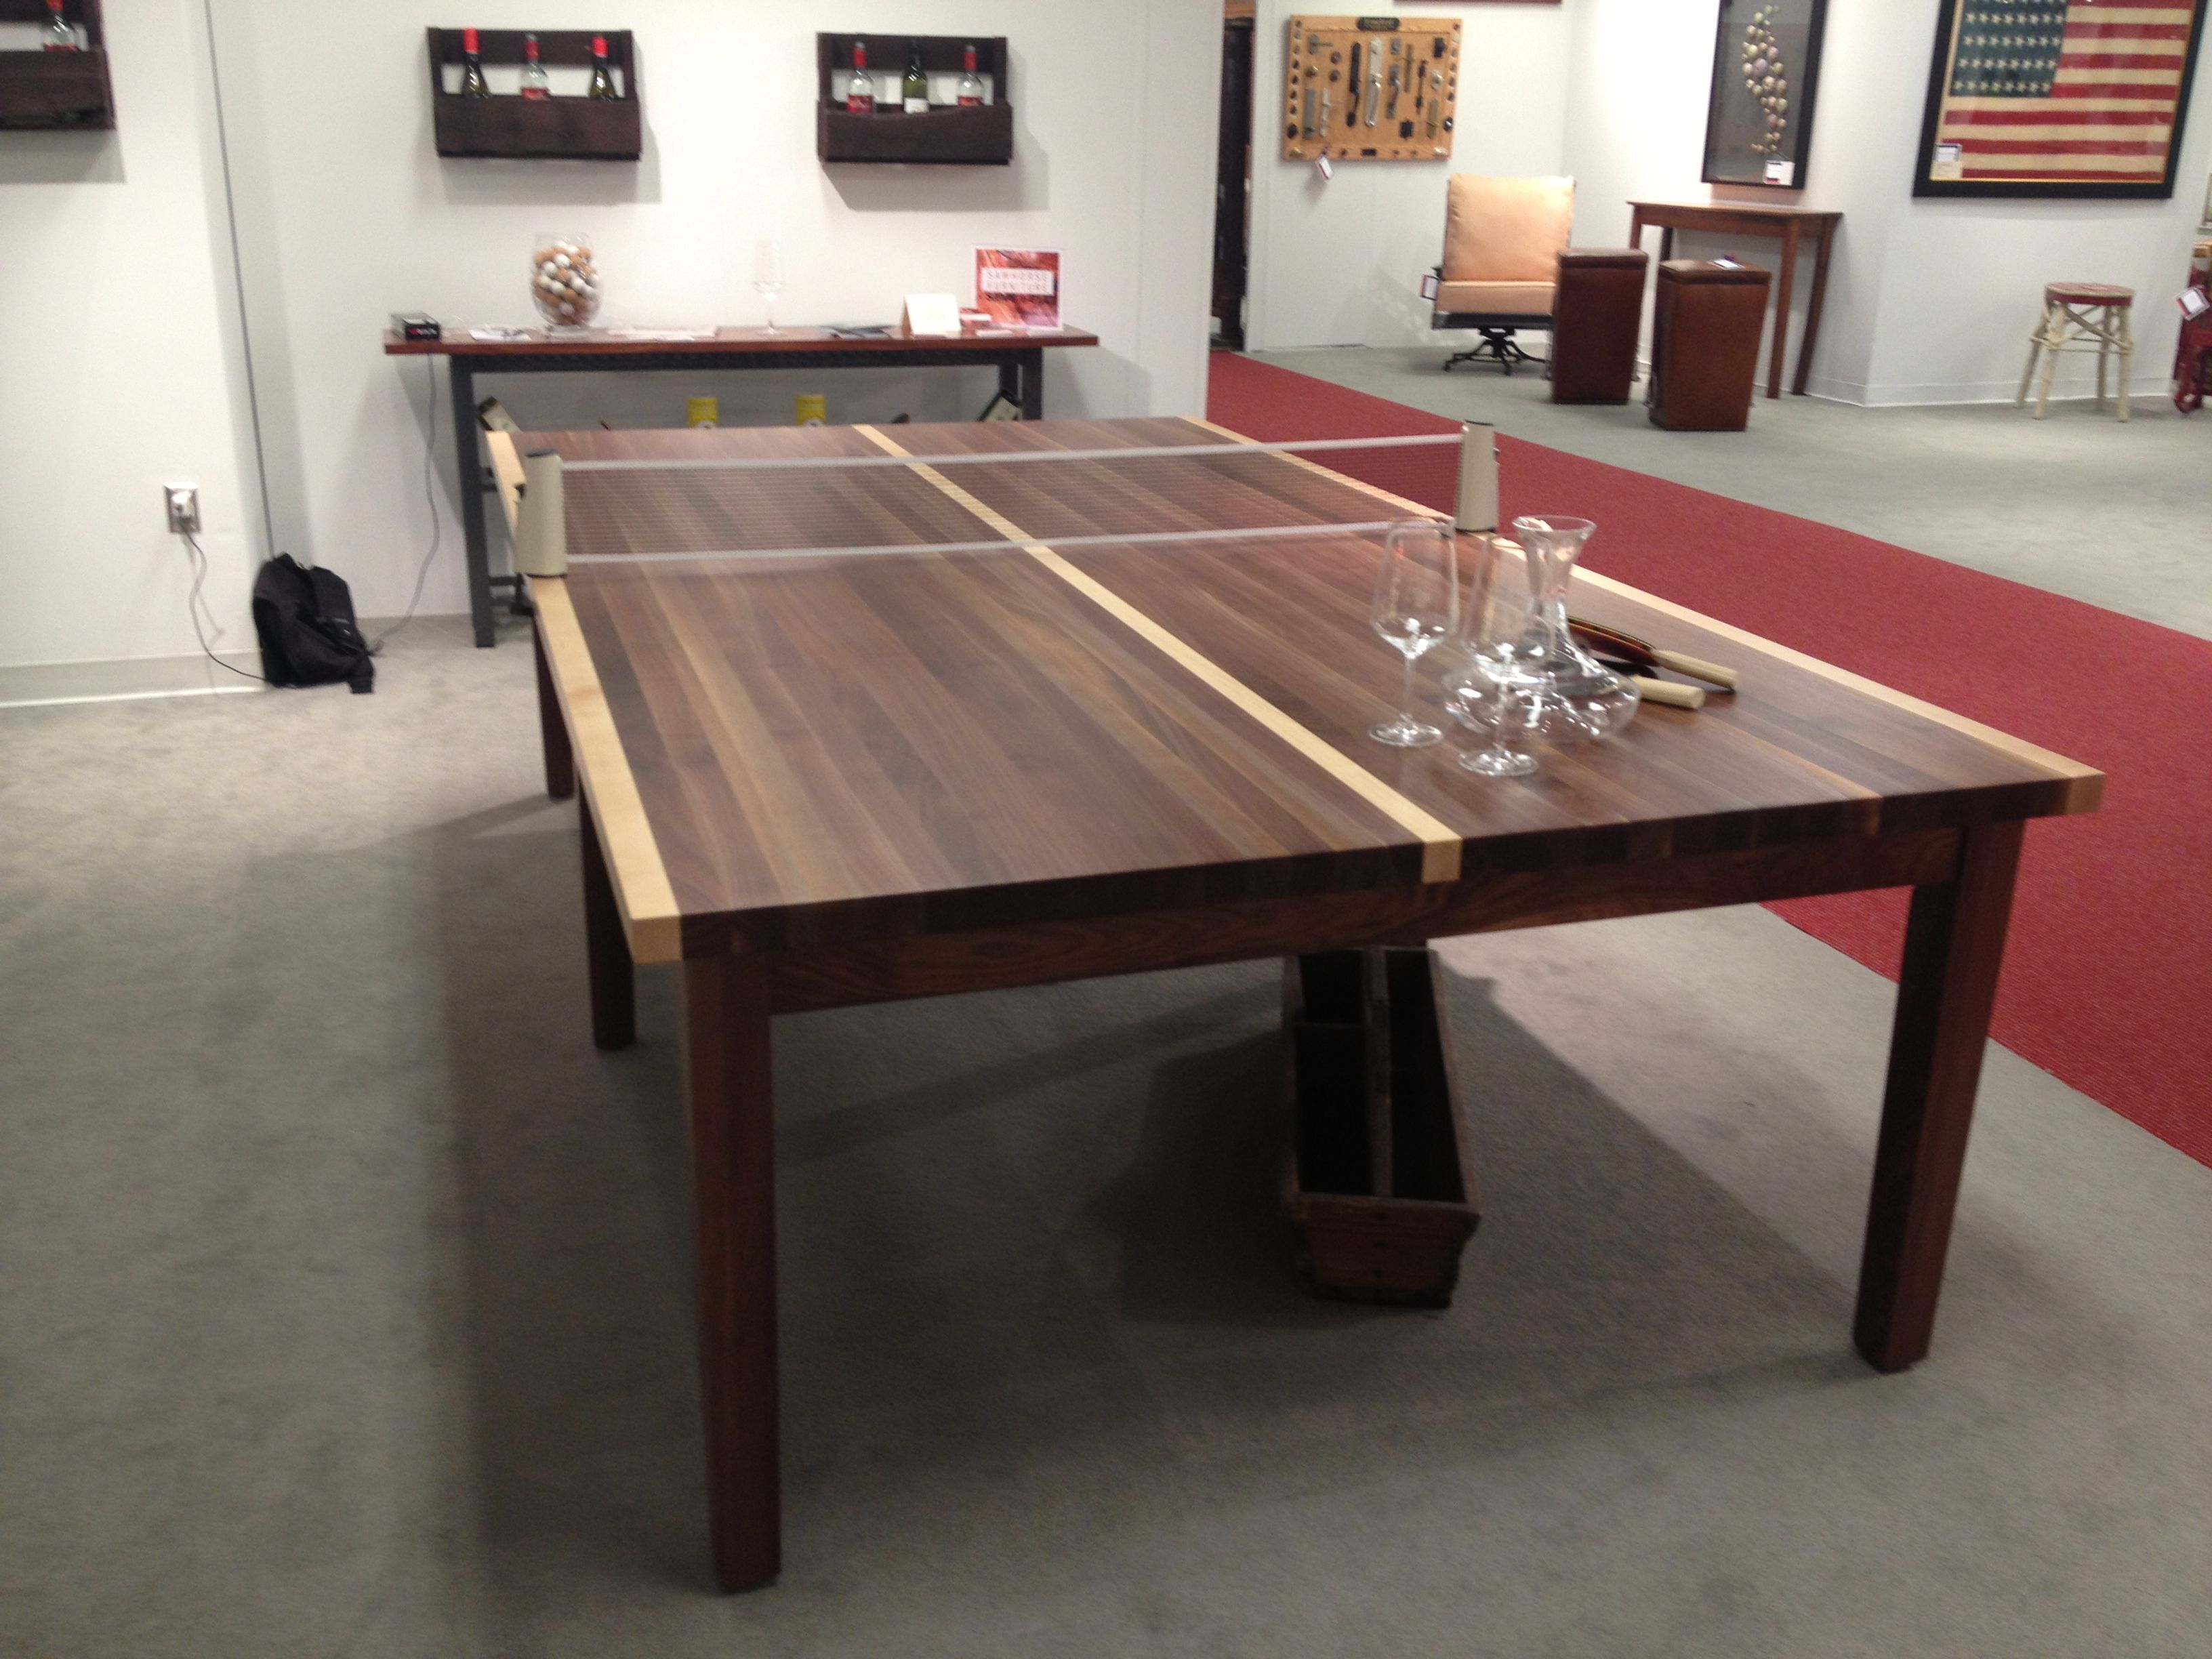 Custom Wood Top Ping Pong Table Build Ideas Ping Pong